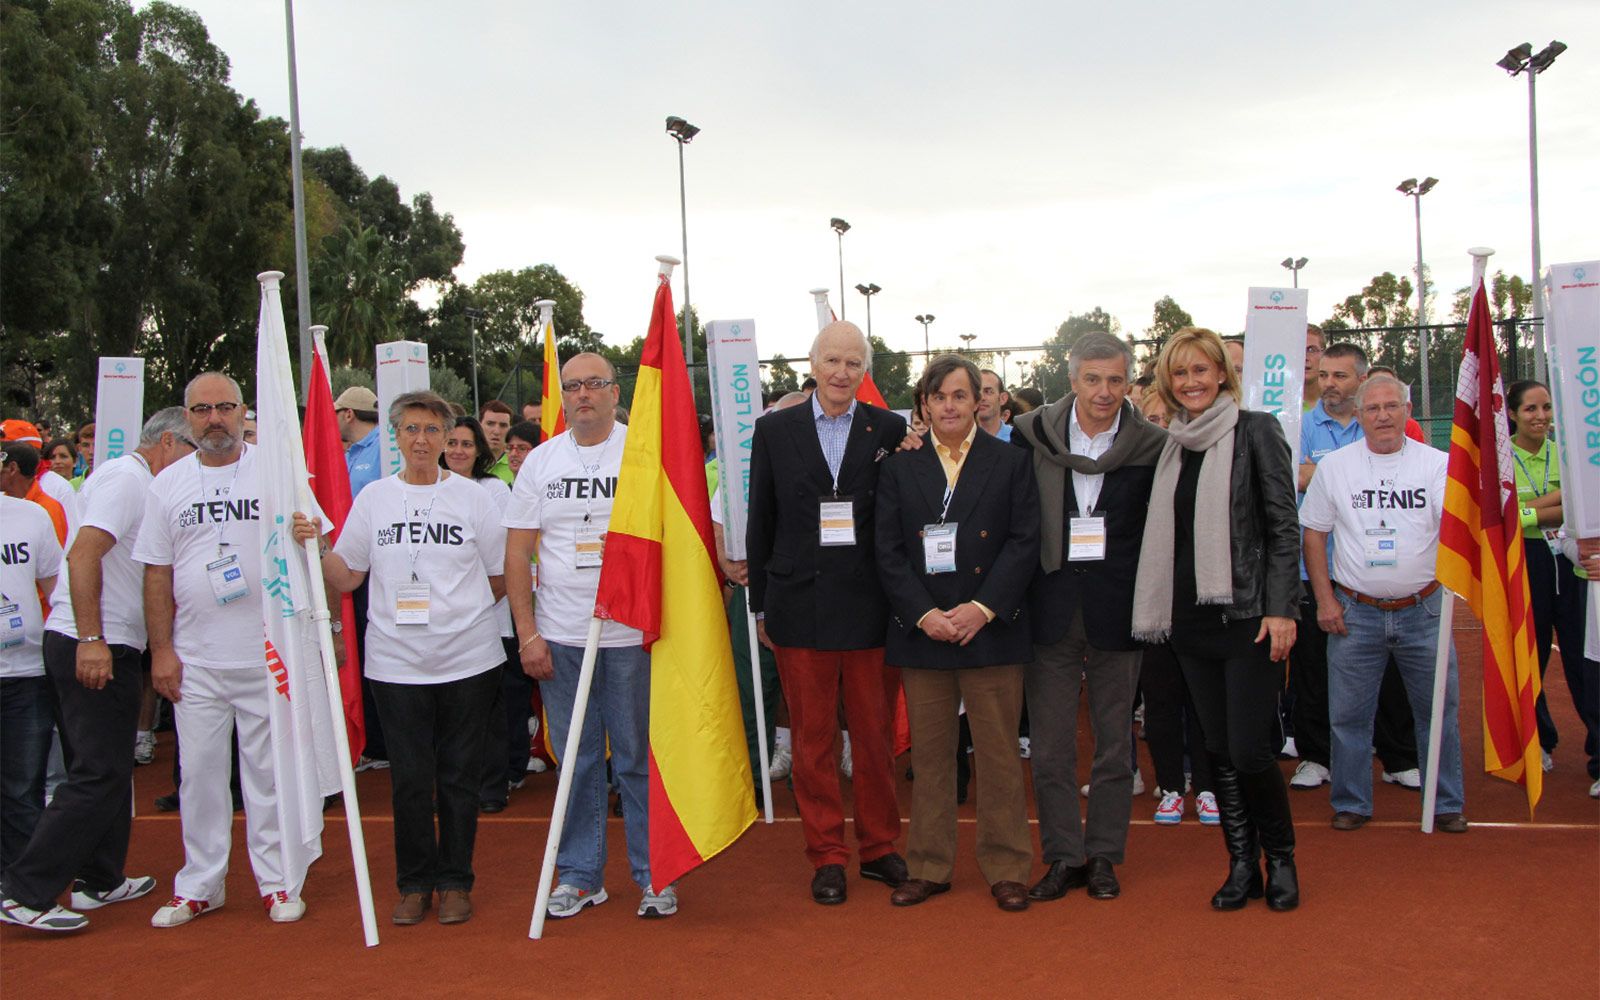 Some of the participants at the opening of the More Than Tennis